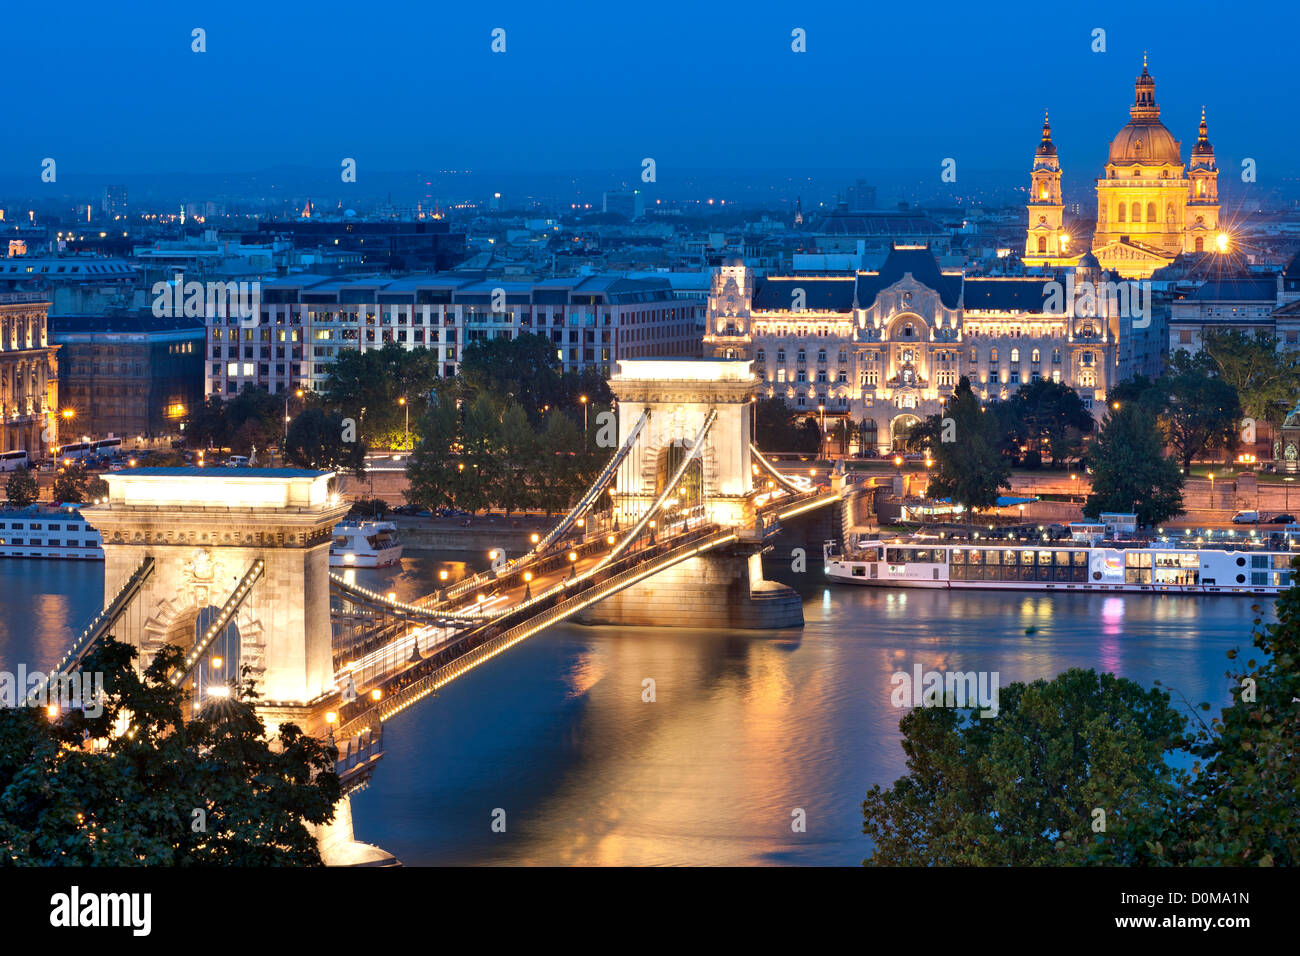 Night view of Széchenyi Chain Bridge over the Danube River in Budapest, the capital of Hungary. - Stock Image